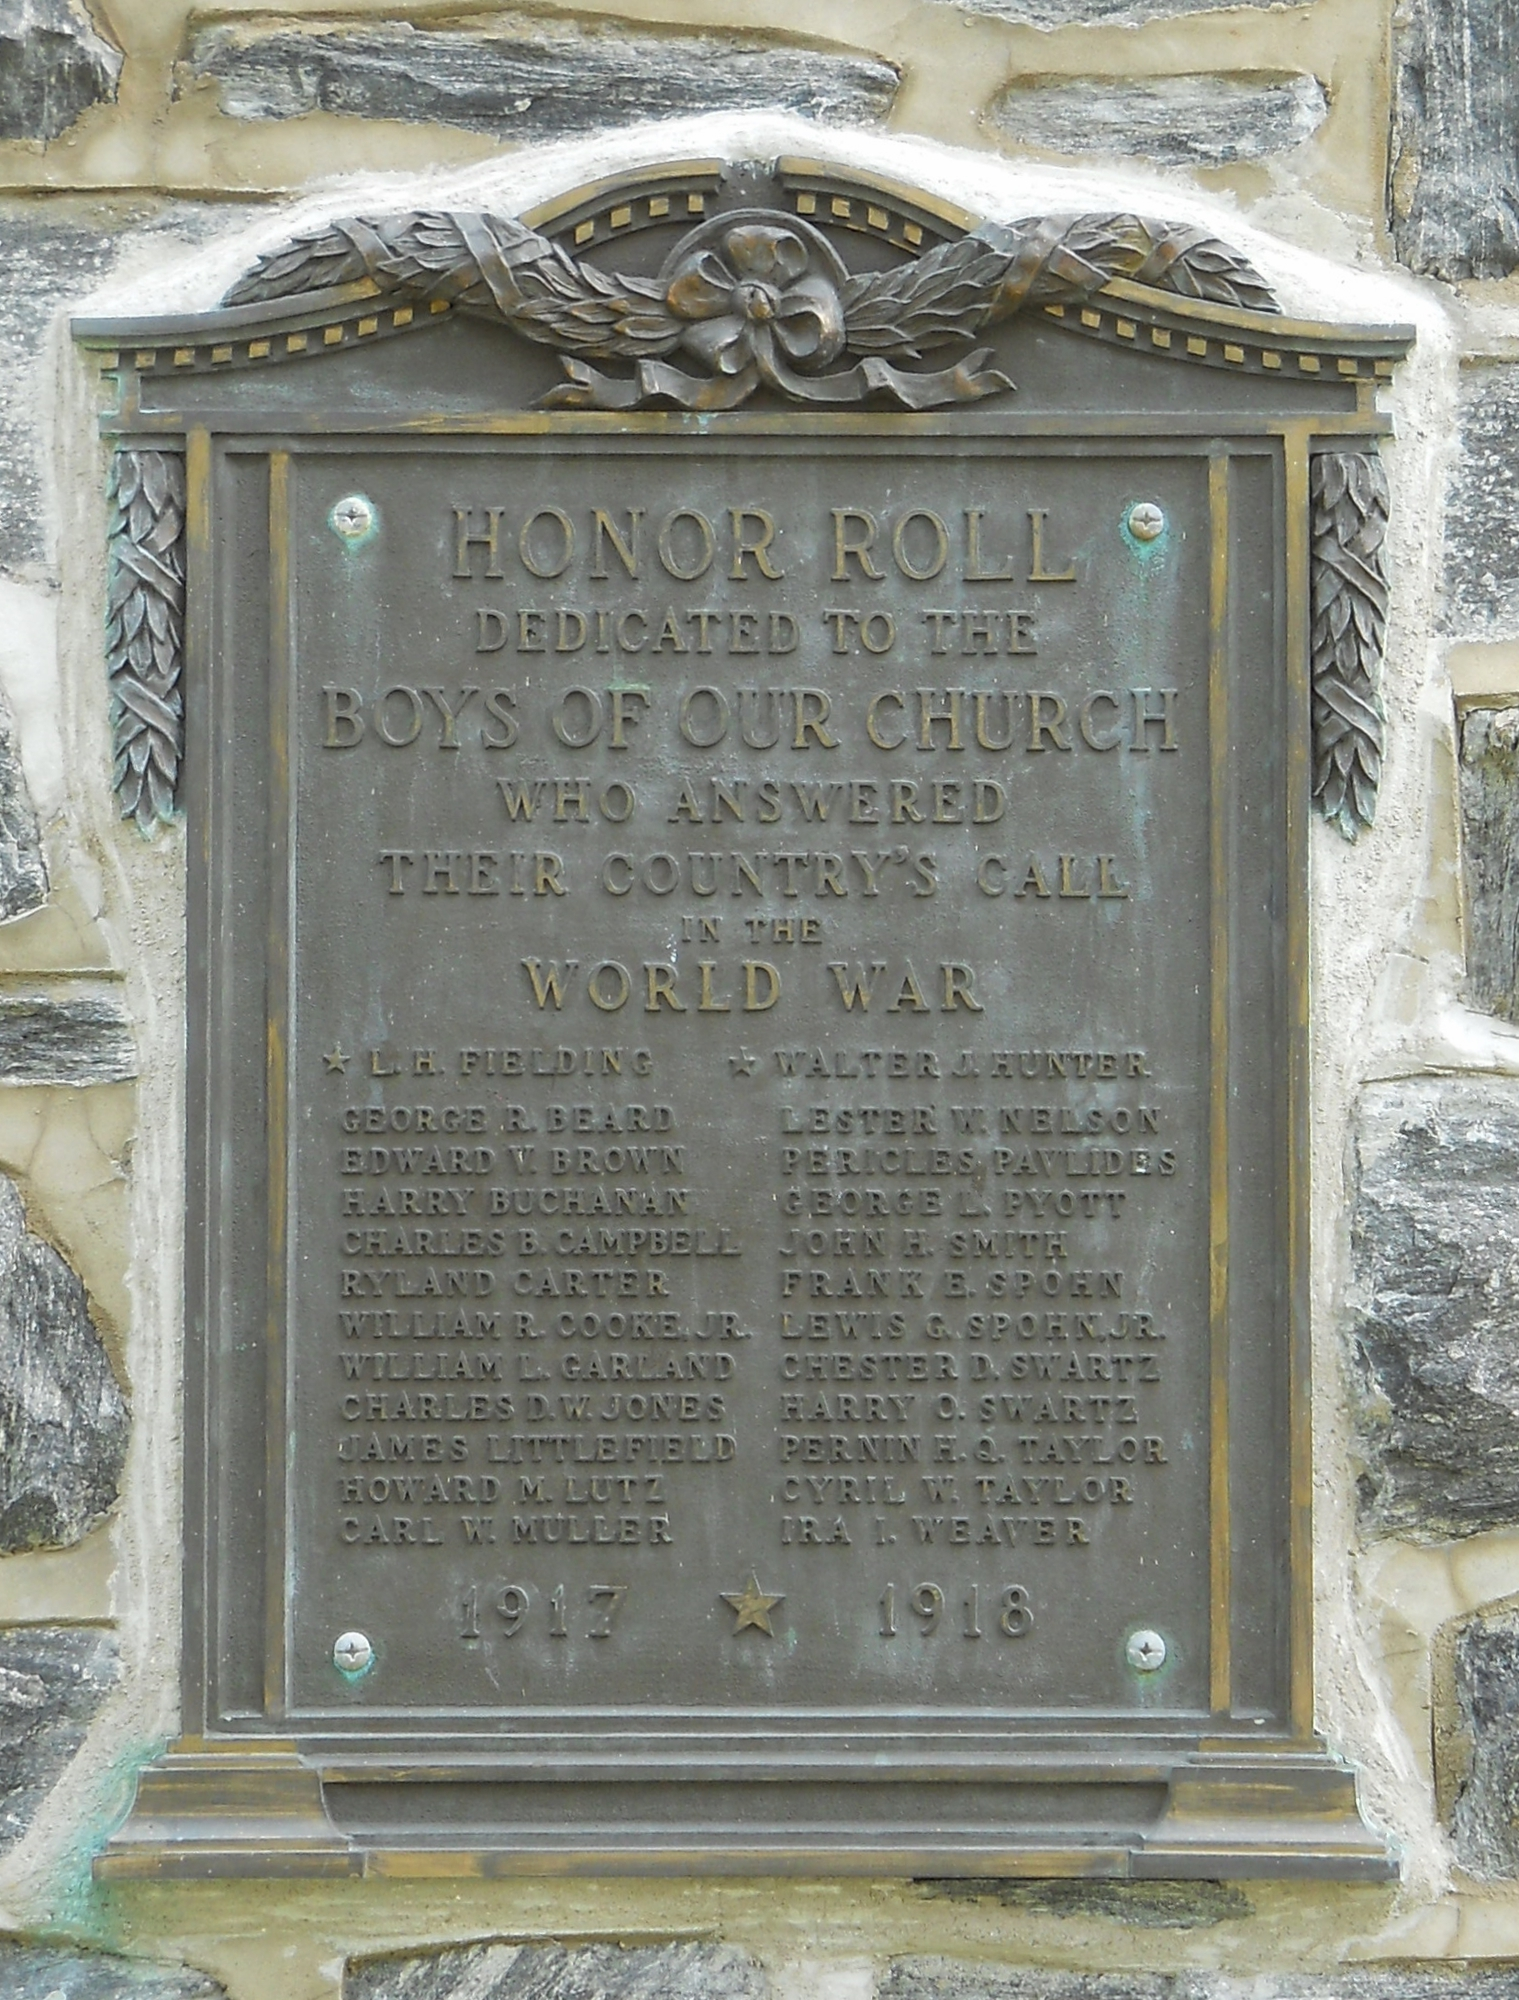 St. Andrew's United Methodist Church World War I Honor Roll (PA)